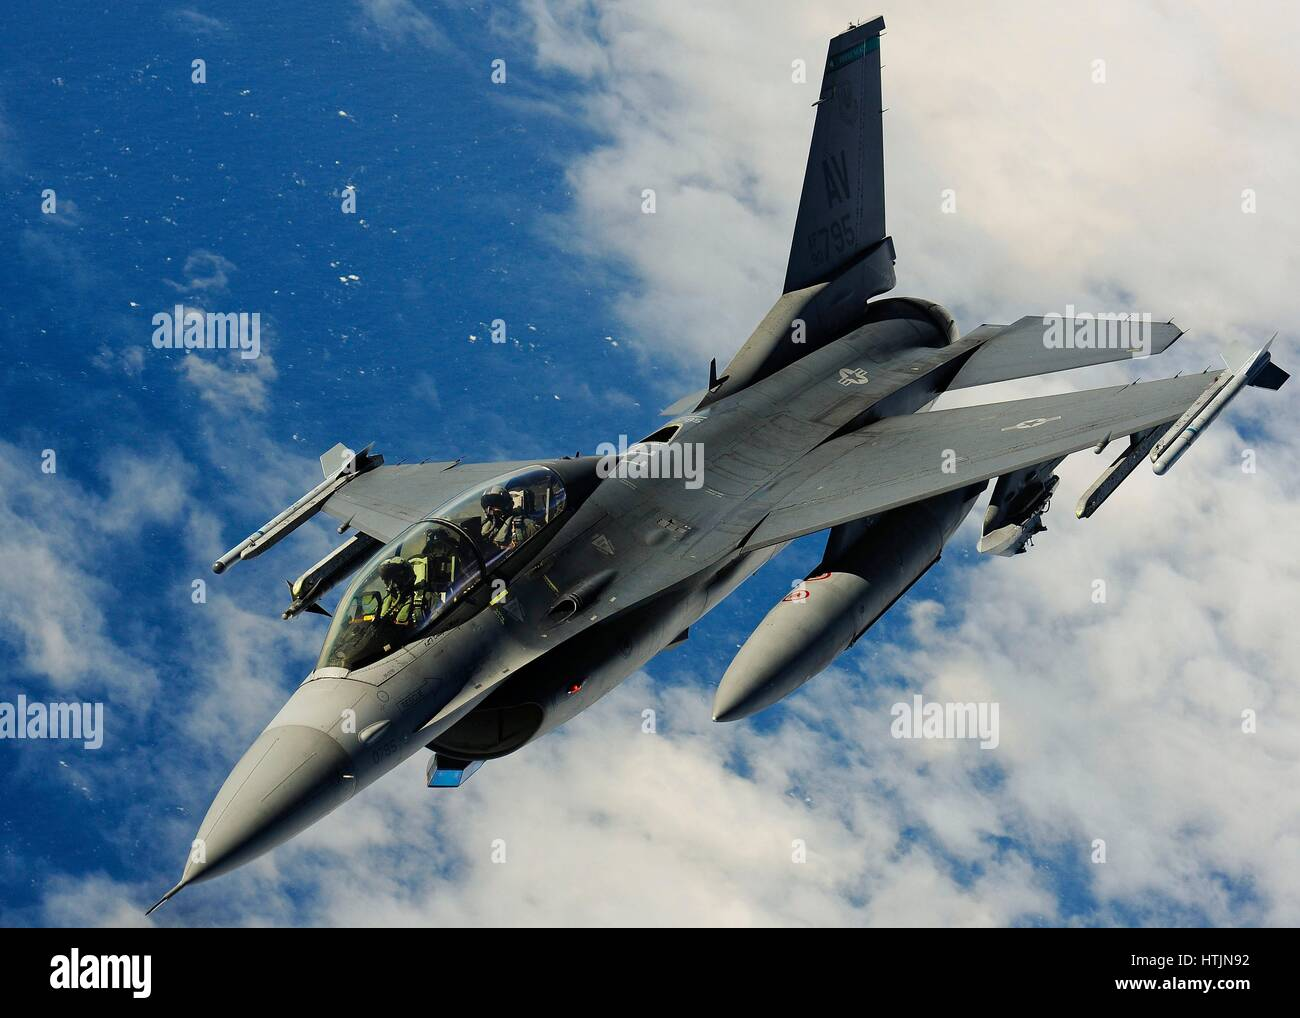 A U.S. Air Force F-16 Fighting Falcon fighter aircraft inflight after refueling in flight January 27, 2017 over - Stock Image